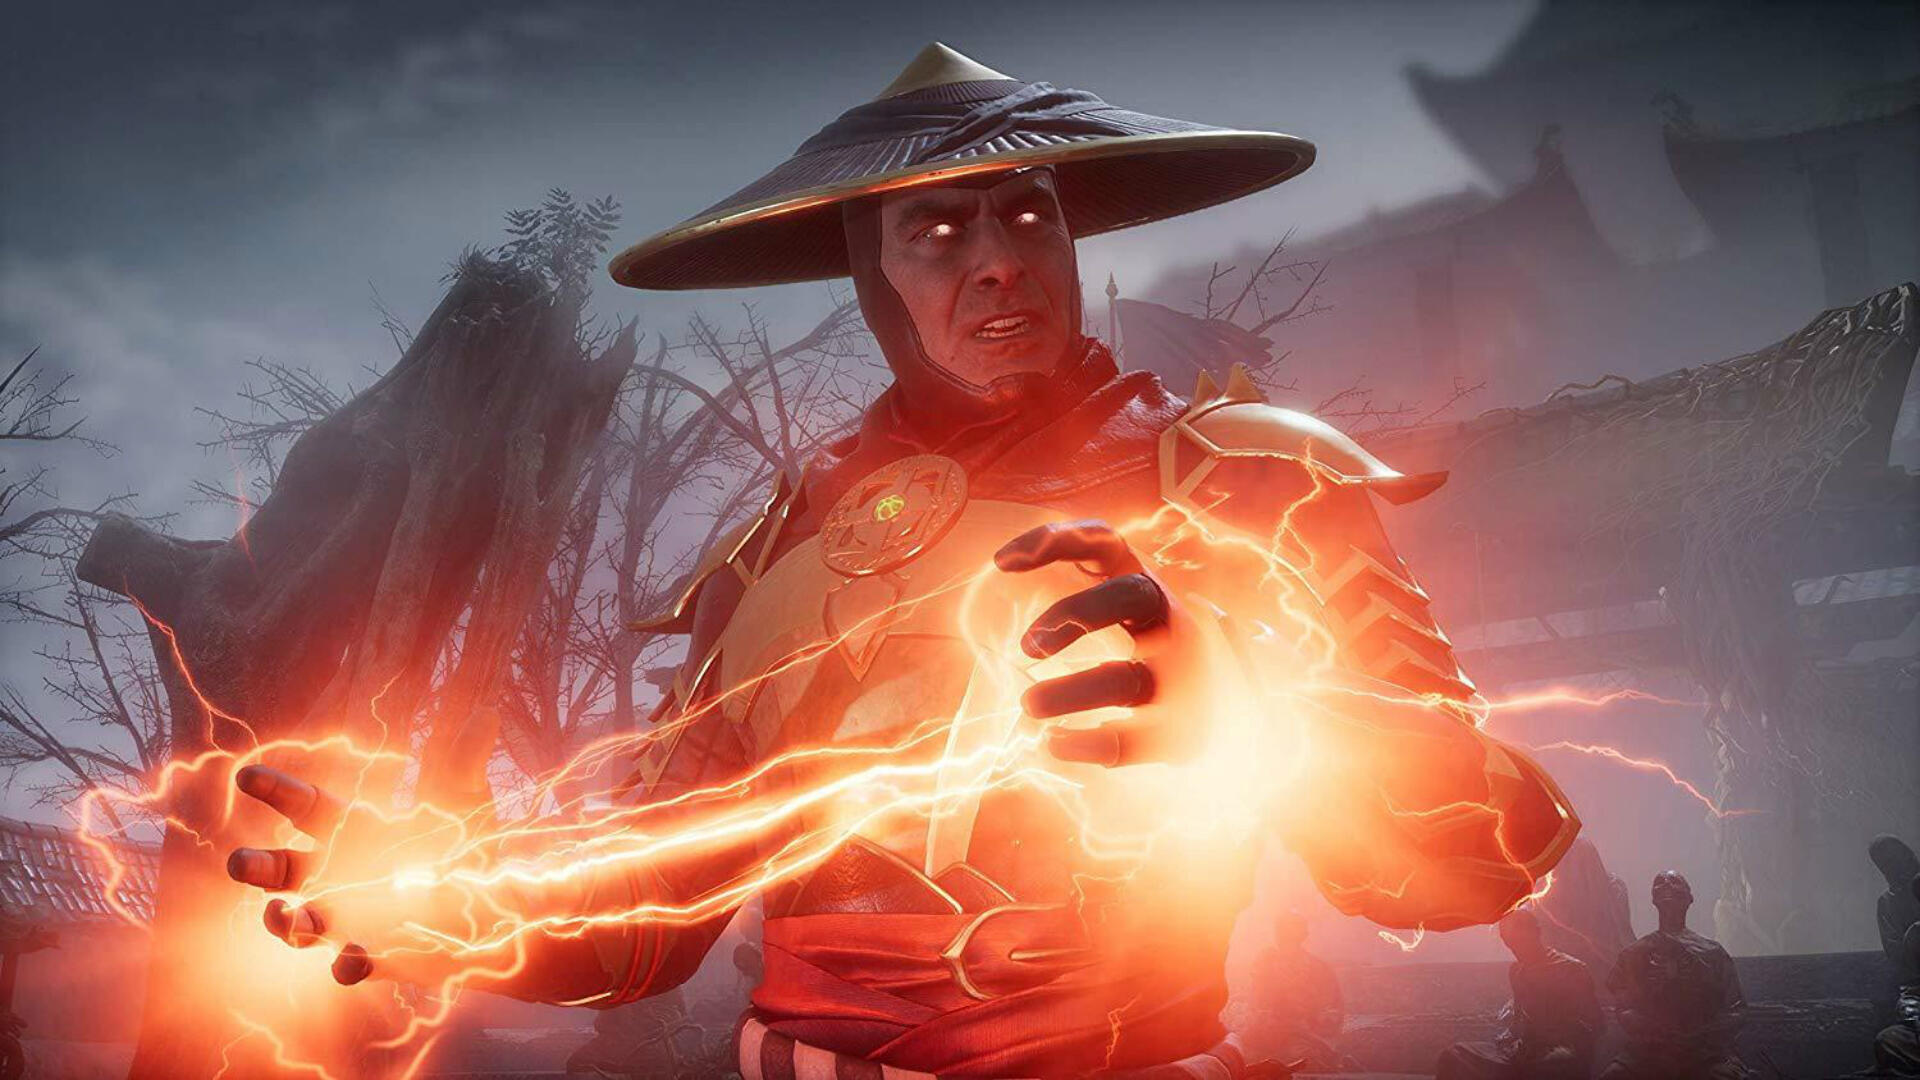 Mortal Kombat 11 Devs Promise Fixes for Towers of Time, Krypt Progression